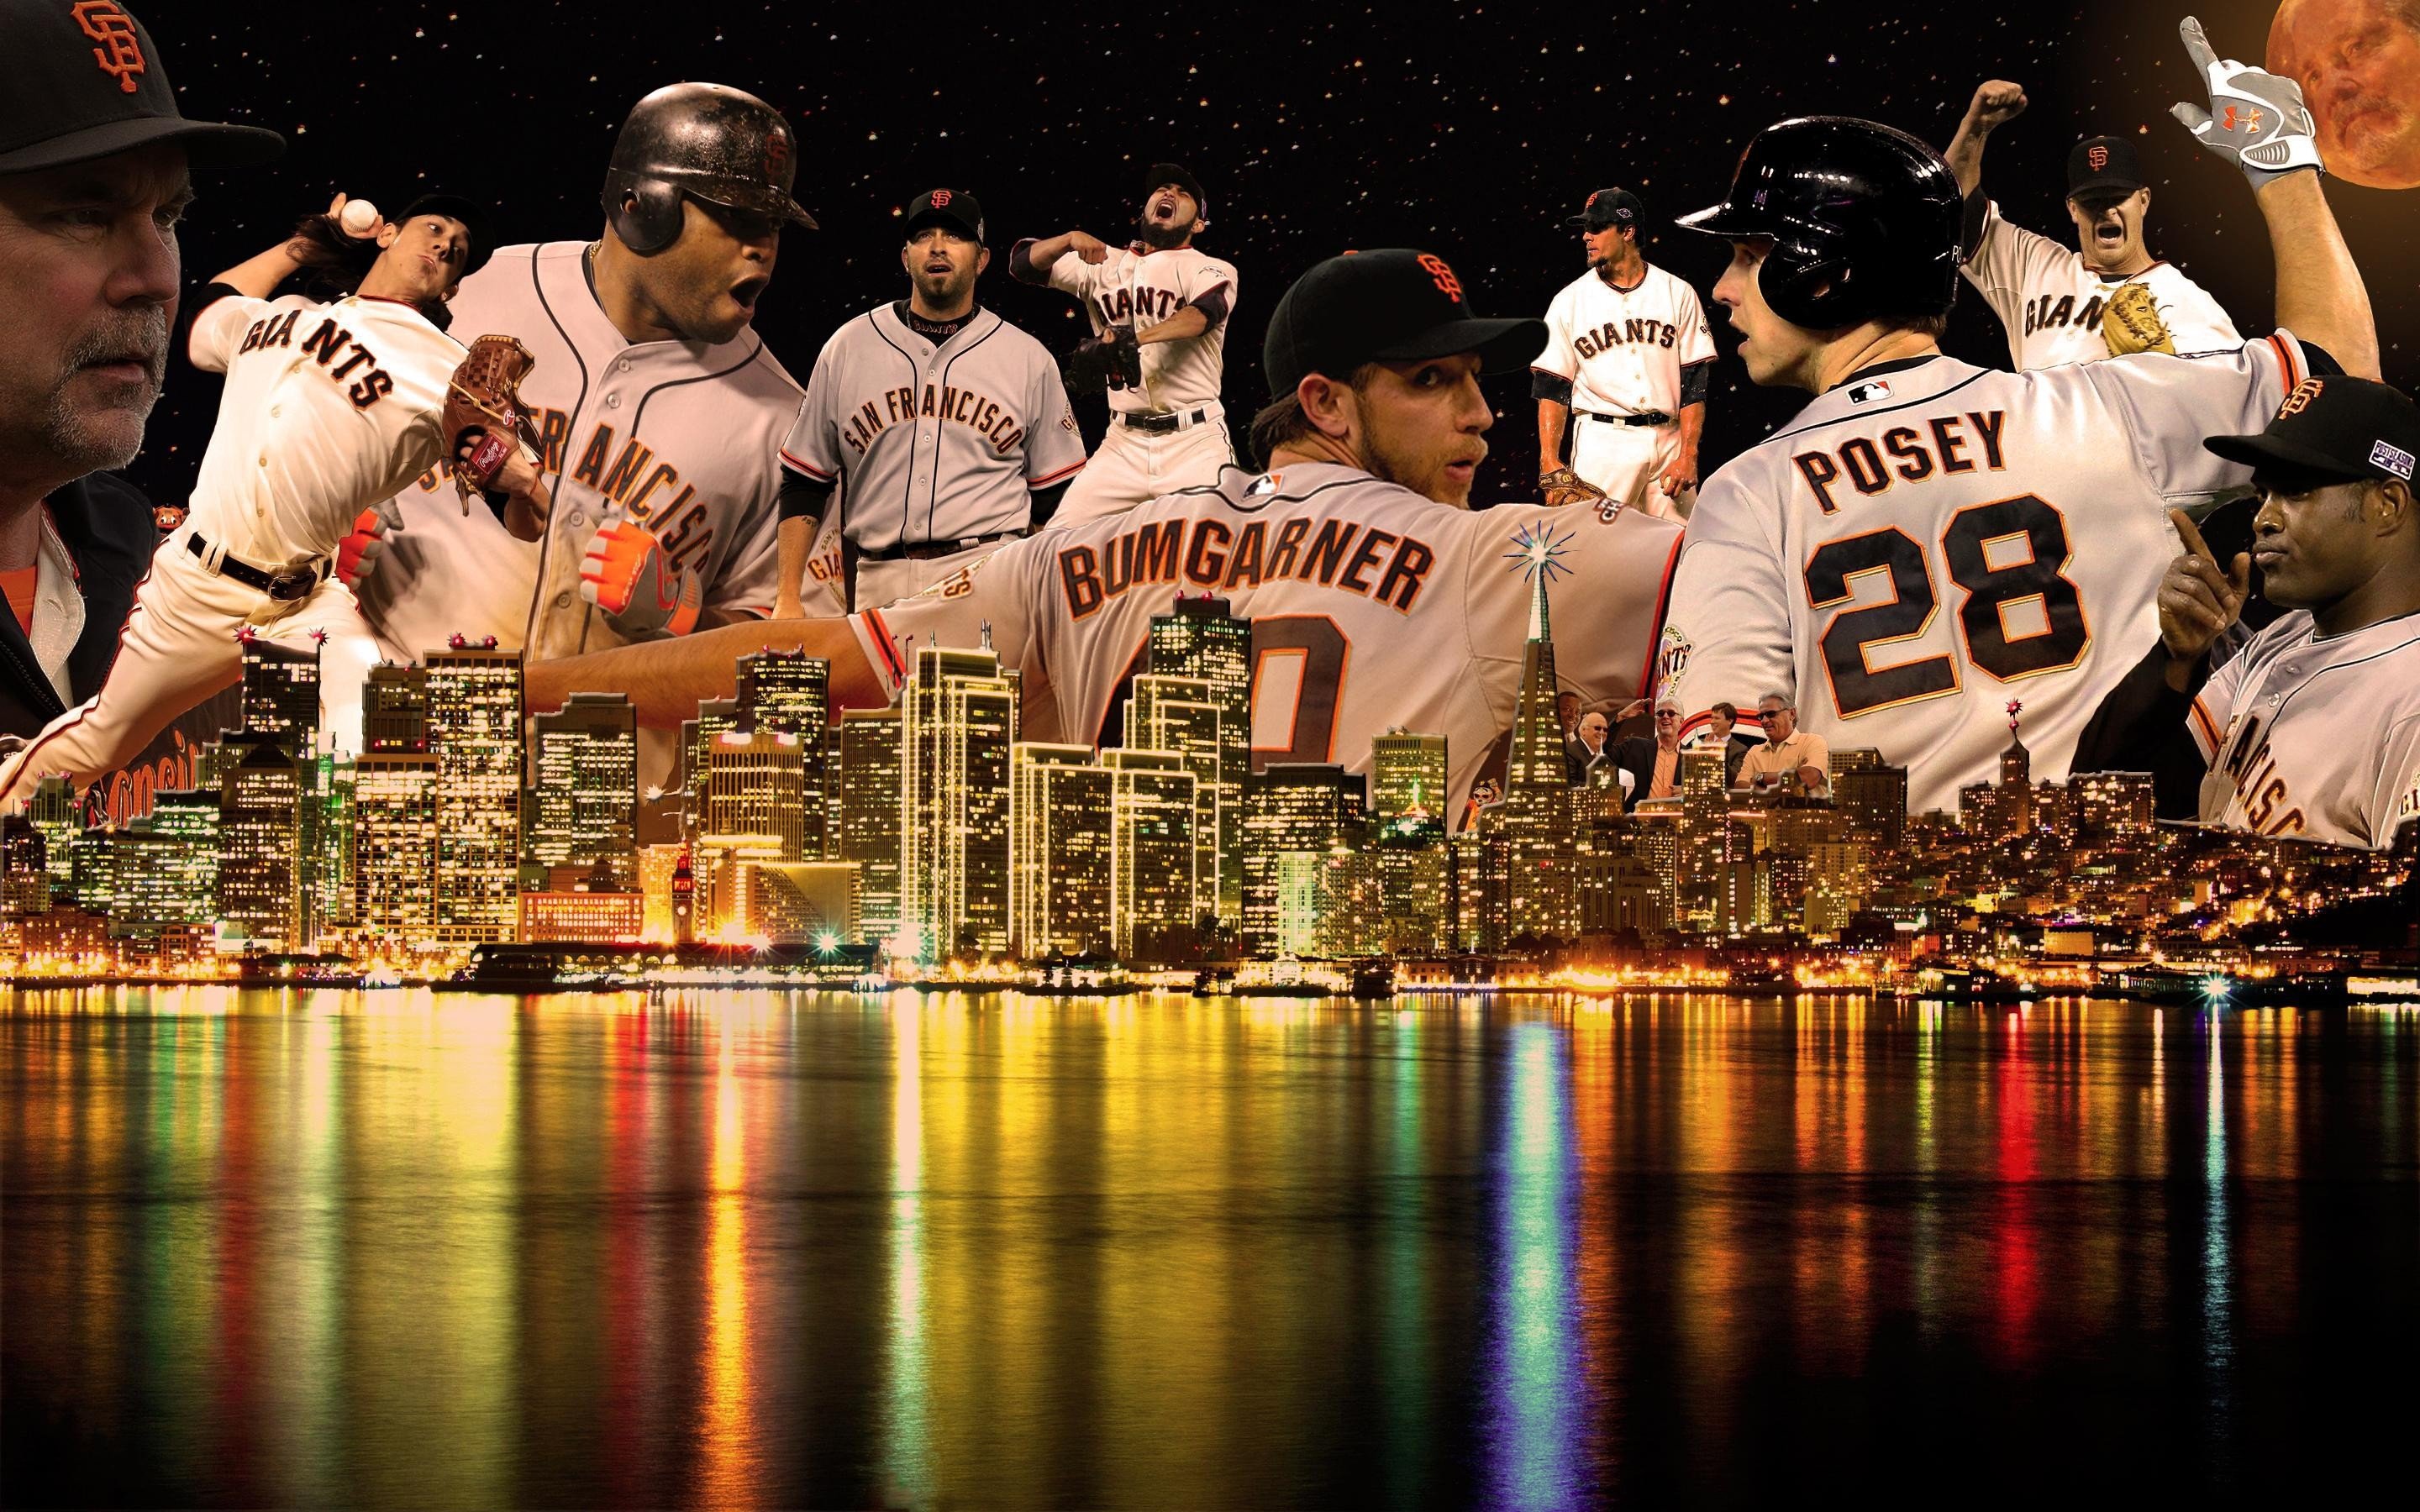 … san francisco giants wallpapers images photos pictures backgrounds …